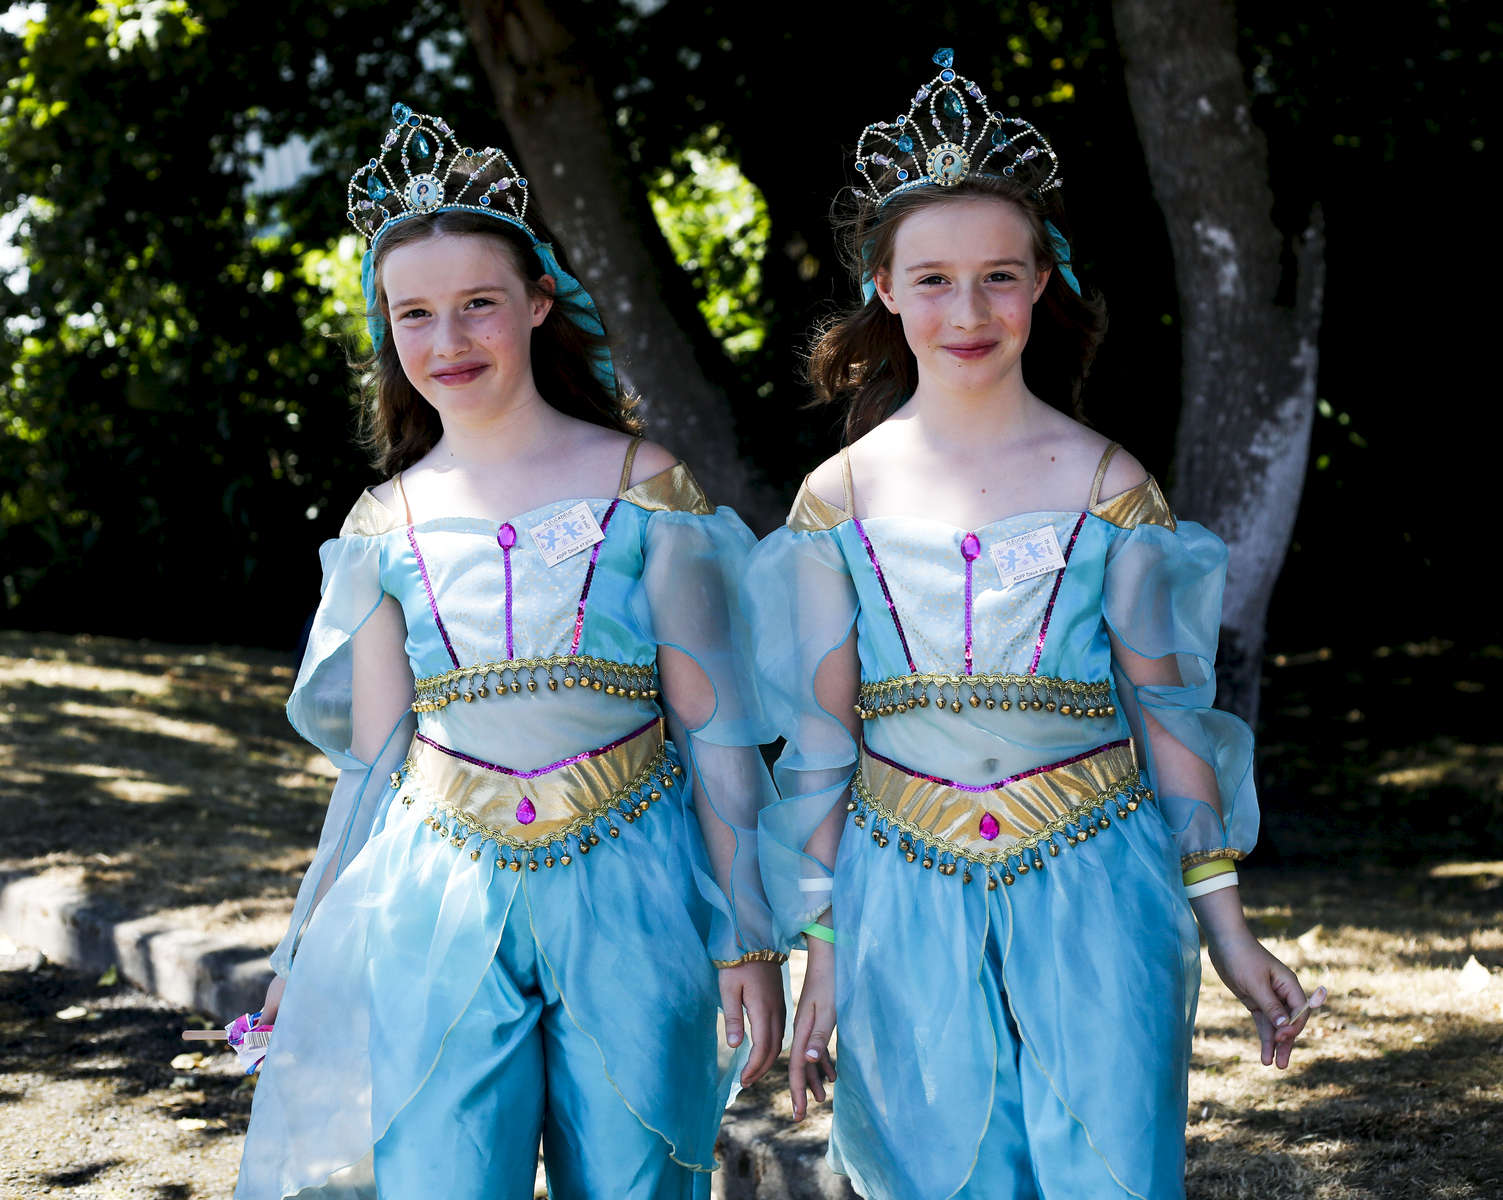 Twin sisters, Lucie and Leah during the Deux et Plus Festival in Pleucadeuc. France.